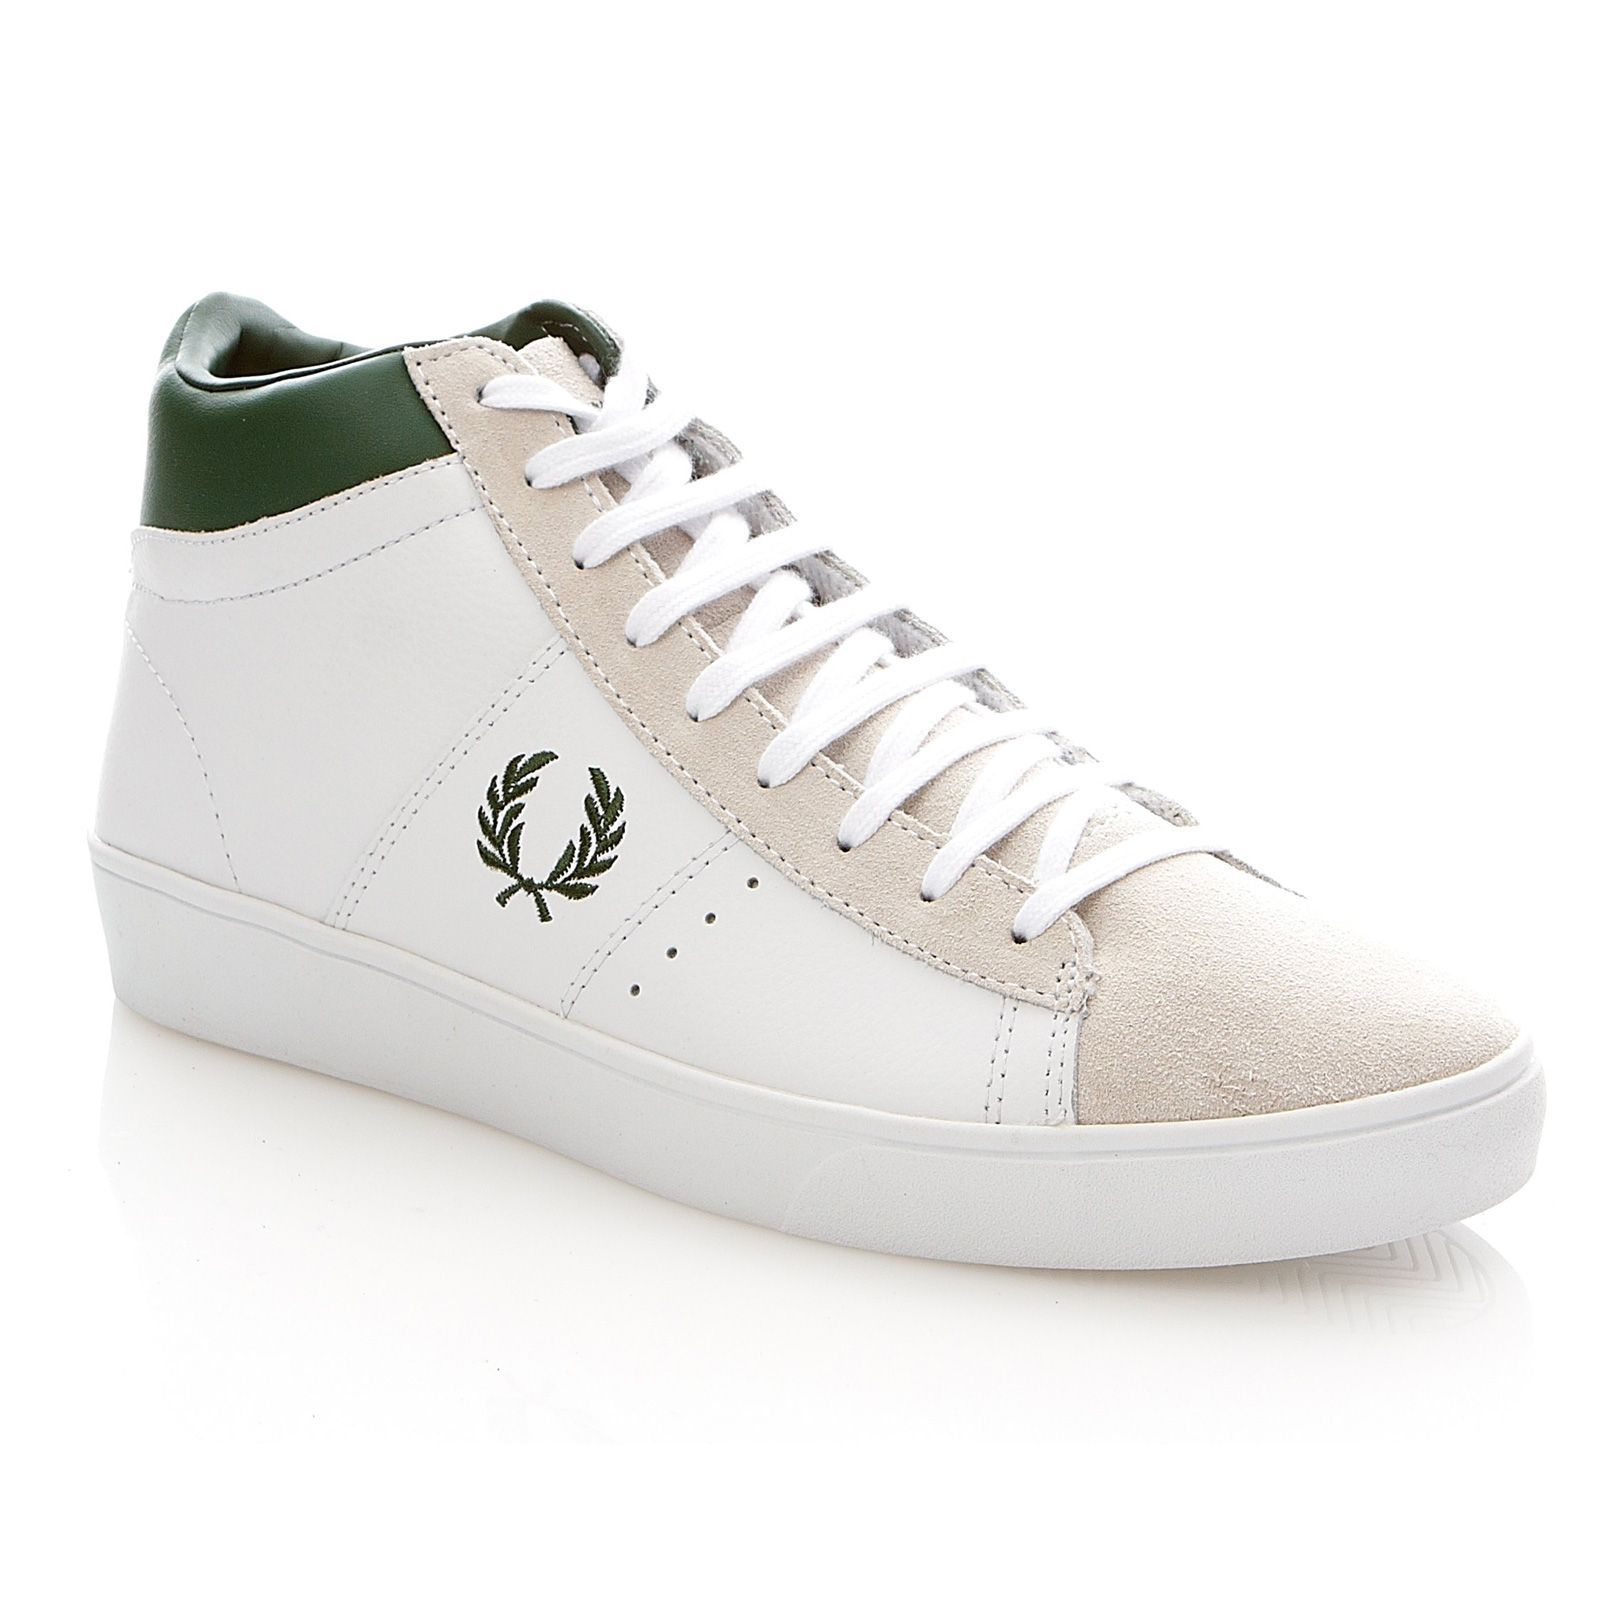 Chaussures Fred Perry Spencer Fashion homme 8sAYHiUULg